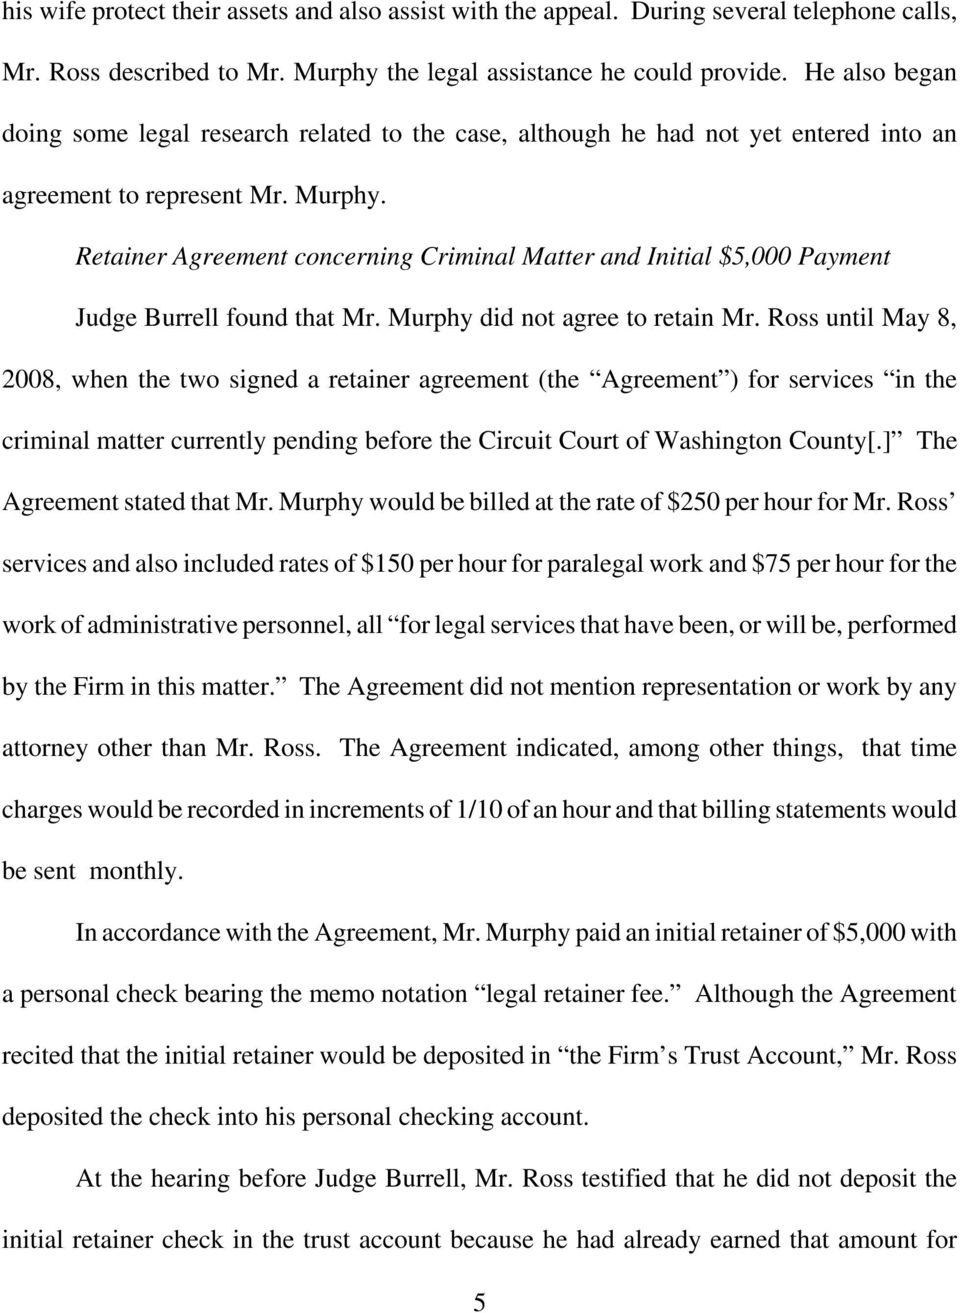 Retainer Agreement concerning Criminal Matter and Initial $5,000 Payment Judge Burrell found that Mr. Murphy did not agree to retain Mr.